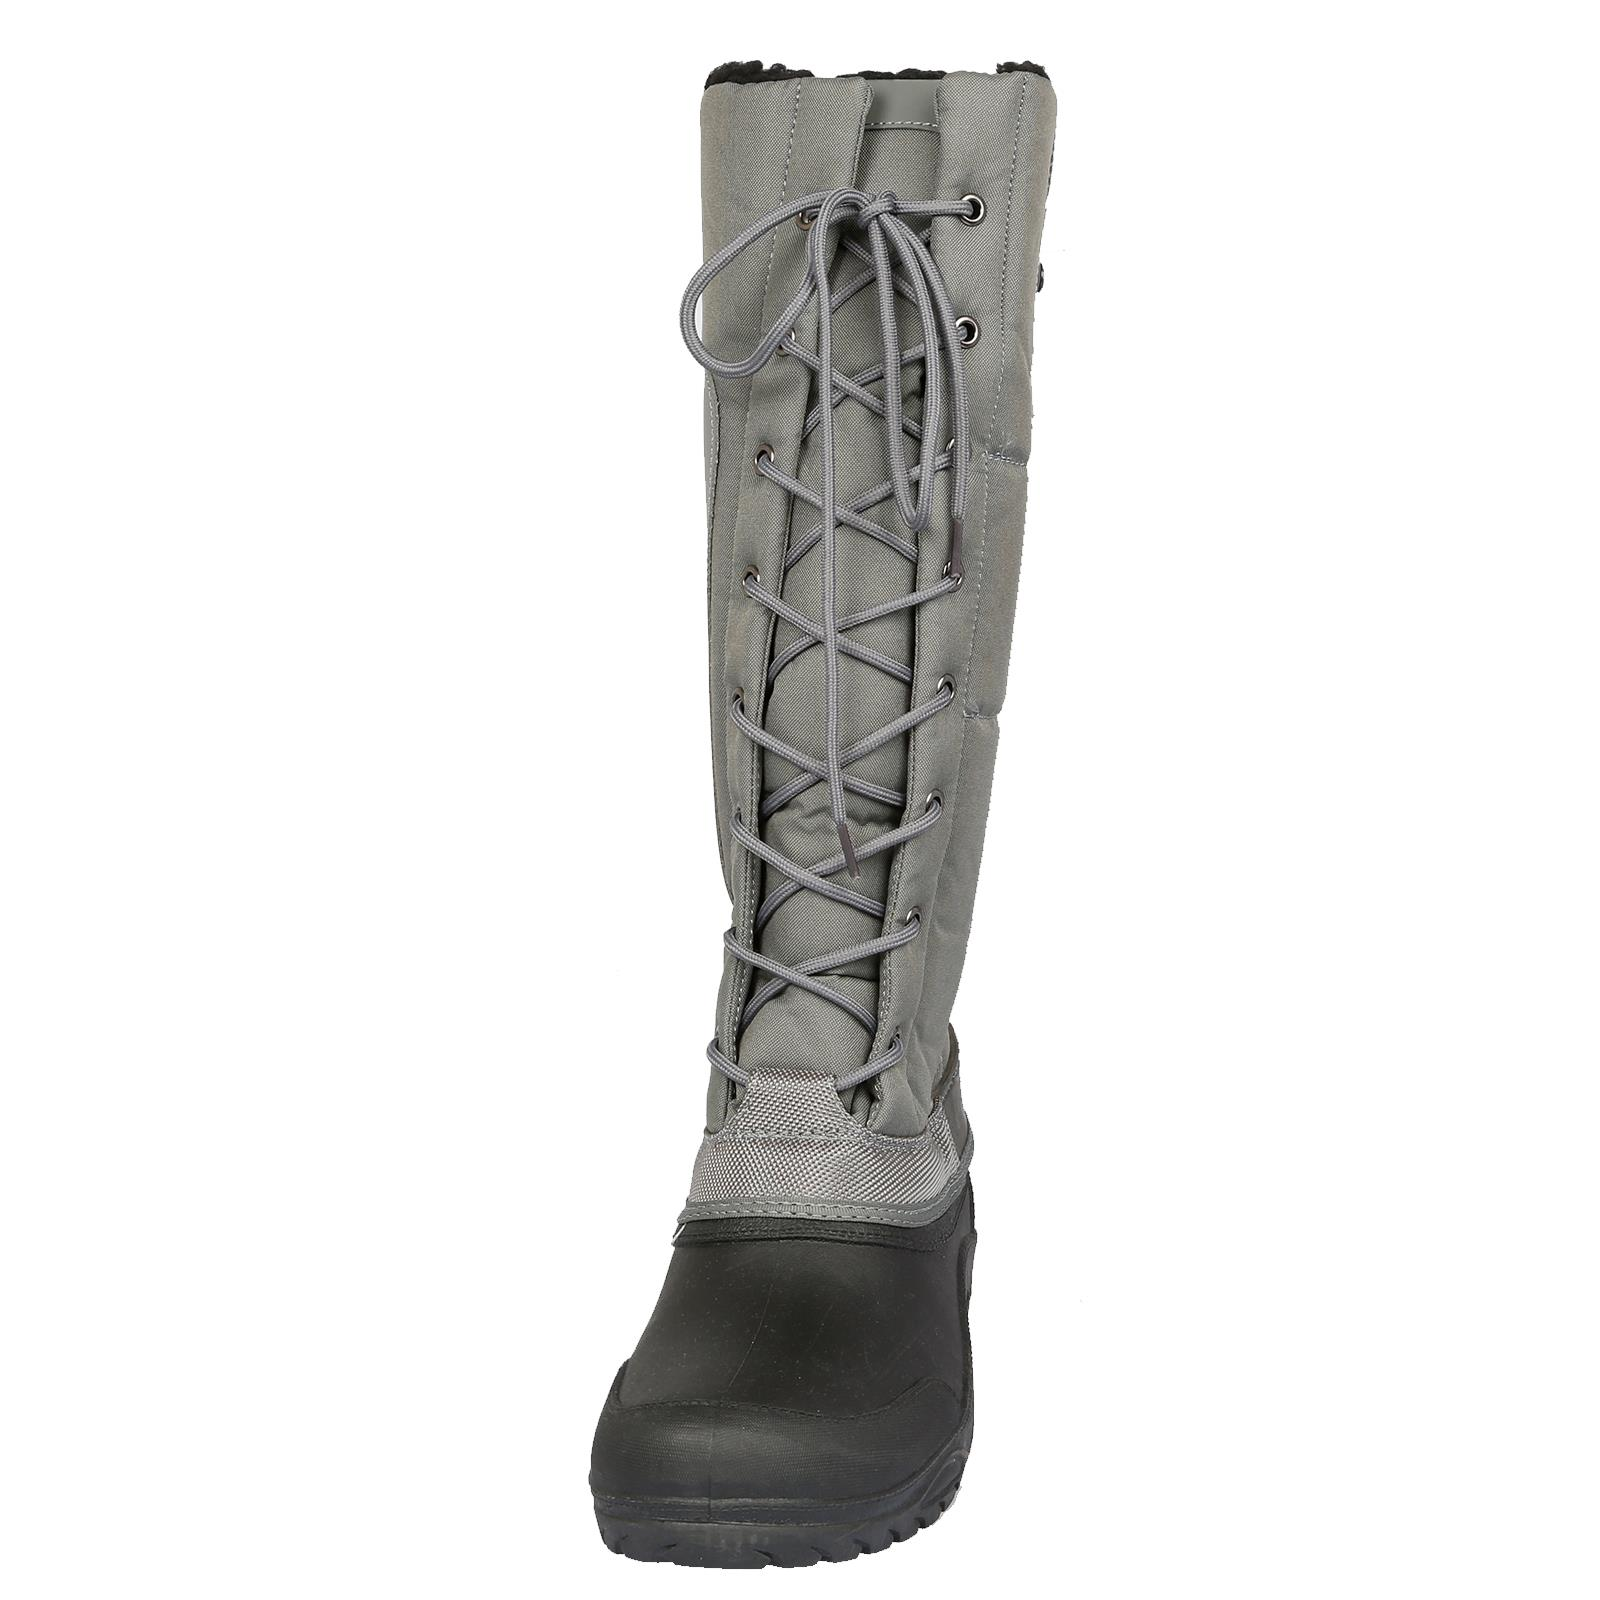 Bow /& Arrow Siberia Unisex Horse Riding Durable Waterproof Winter Thermo Boots